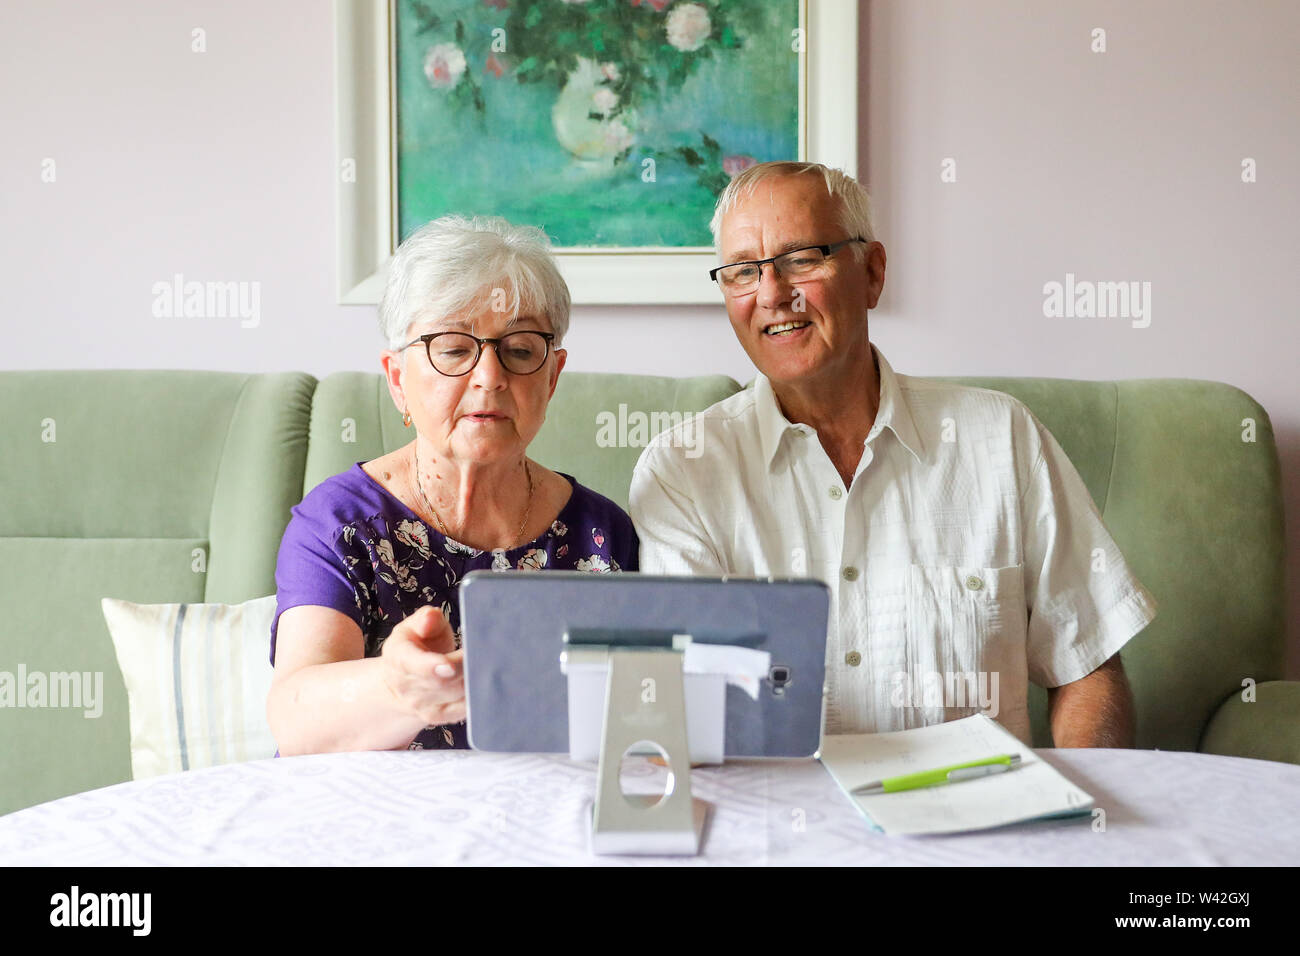 19 July 2019, Saxony-Anhalt, Halle (Saale): The pensioners Siglinde and Norbert Neumann use a tablet for communication with their family doctor. From the point of view of a housing cooperative in Halle, telemedicine could be a great help, especially for older people. In a project in 20 apartments, 94 percent of the test persons rated the digital doctor's interview as very good or good. For the 'Haendel II' project, 20 apartments were equipped with the appropriate technology. Subjects were able to reach a doctor via tablet. Photo: Jan Woitas/dpa-Zentralbild/dpa - Stock Image